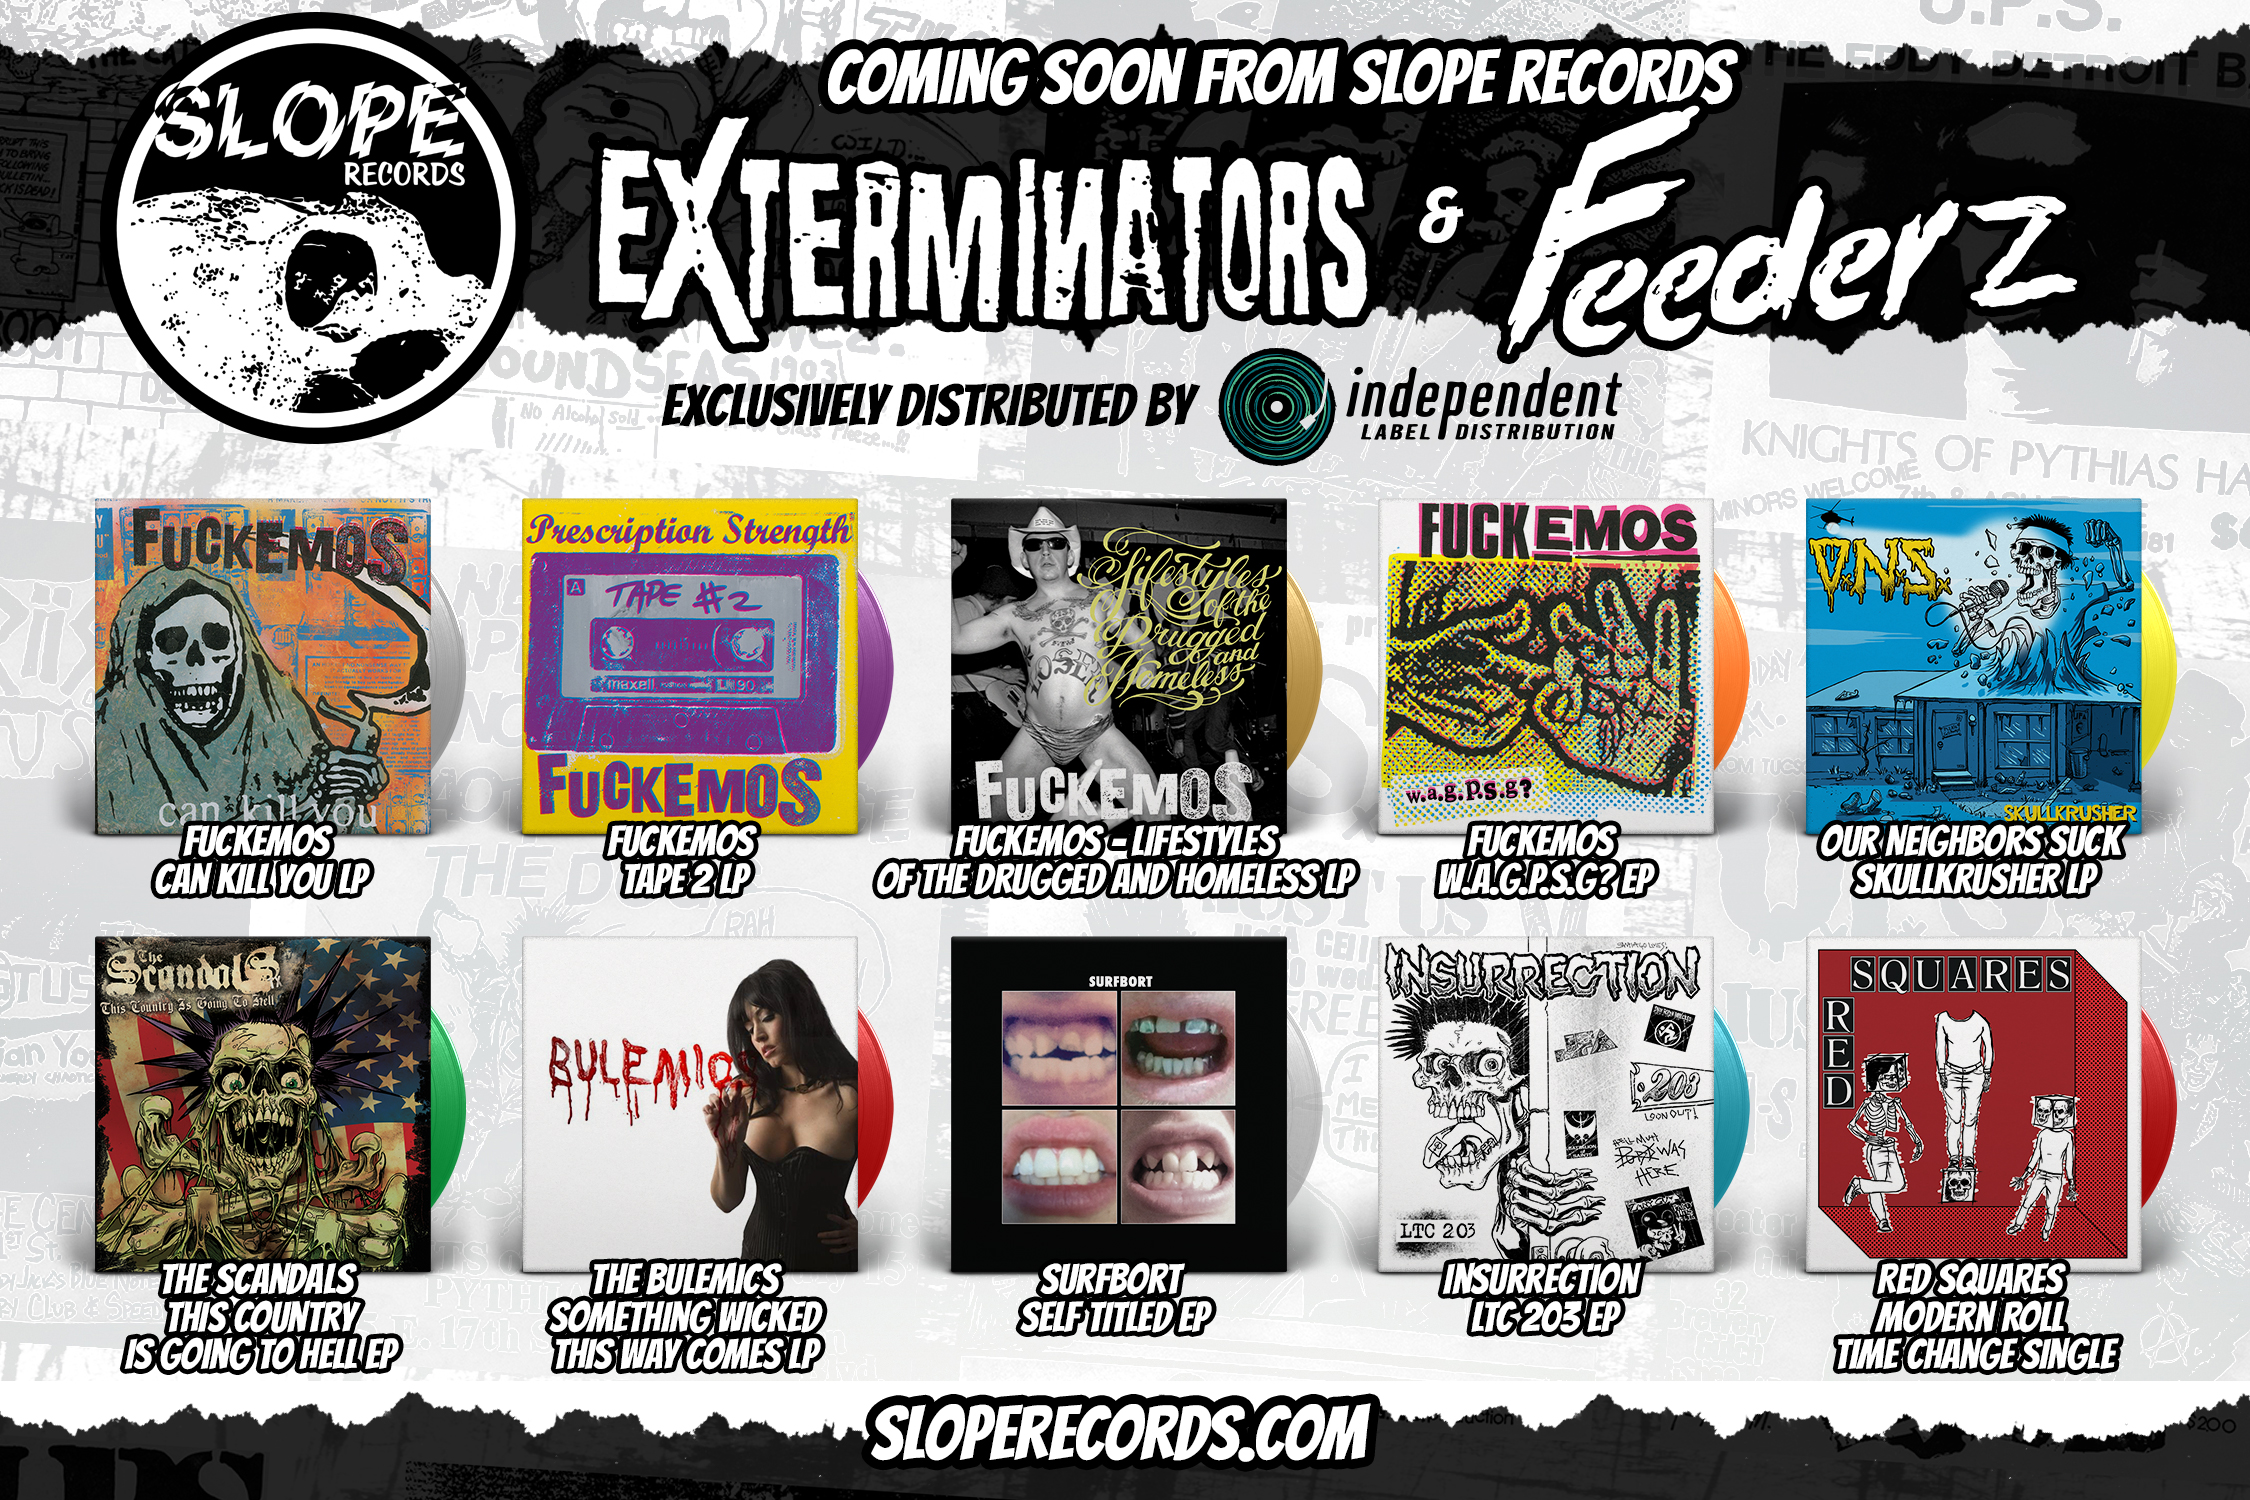 Slope Records ad in the July Issues of Maximum Rocknroll and Razorcake